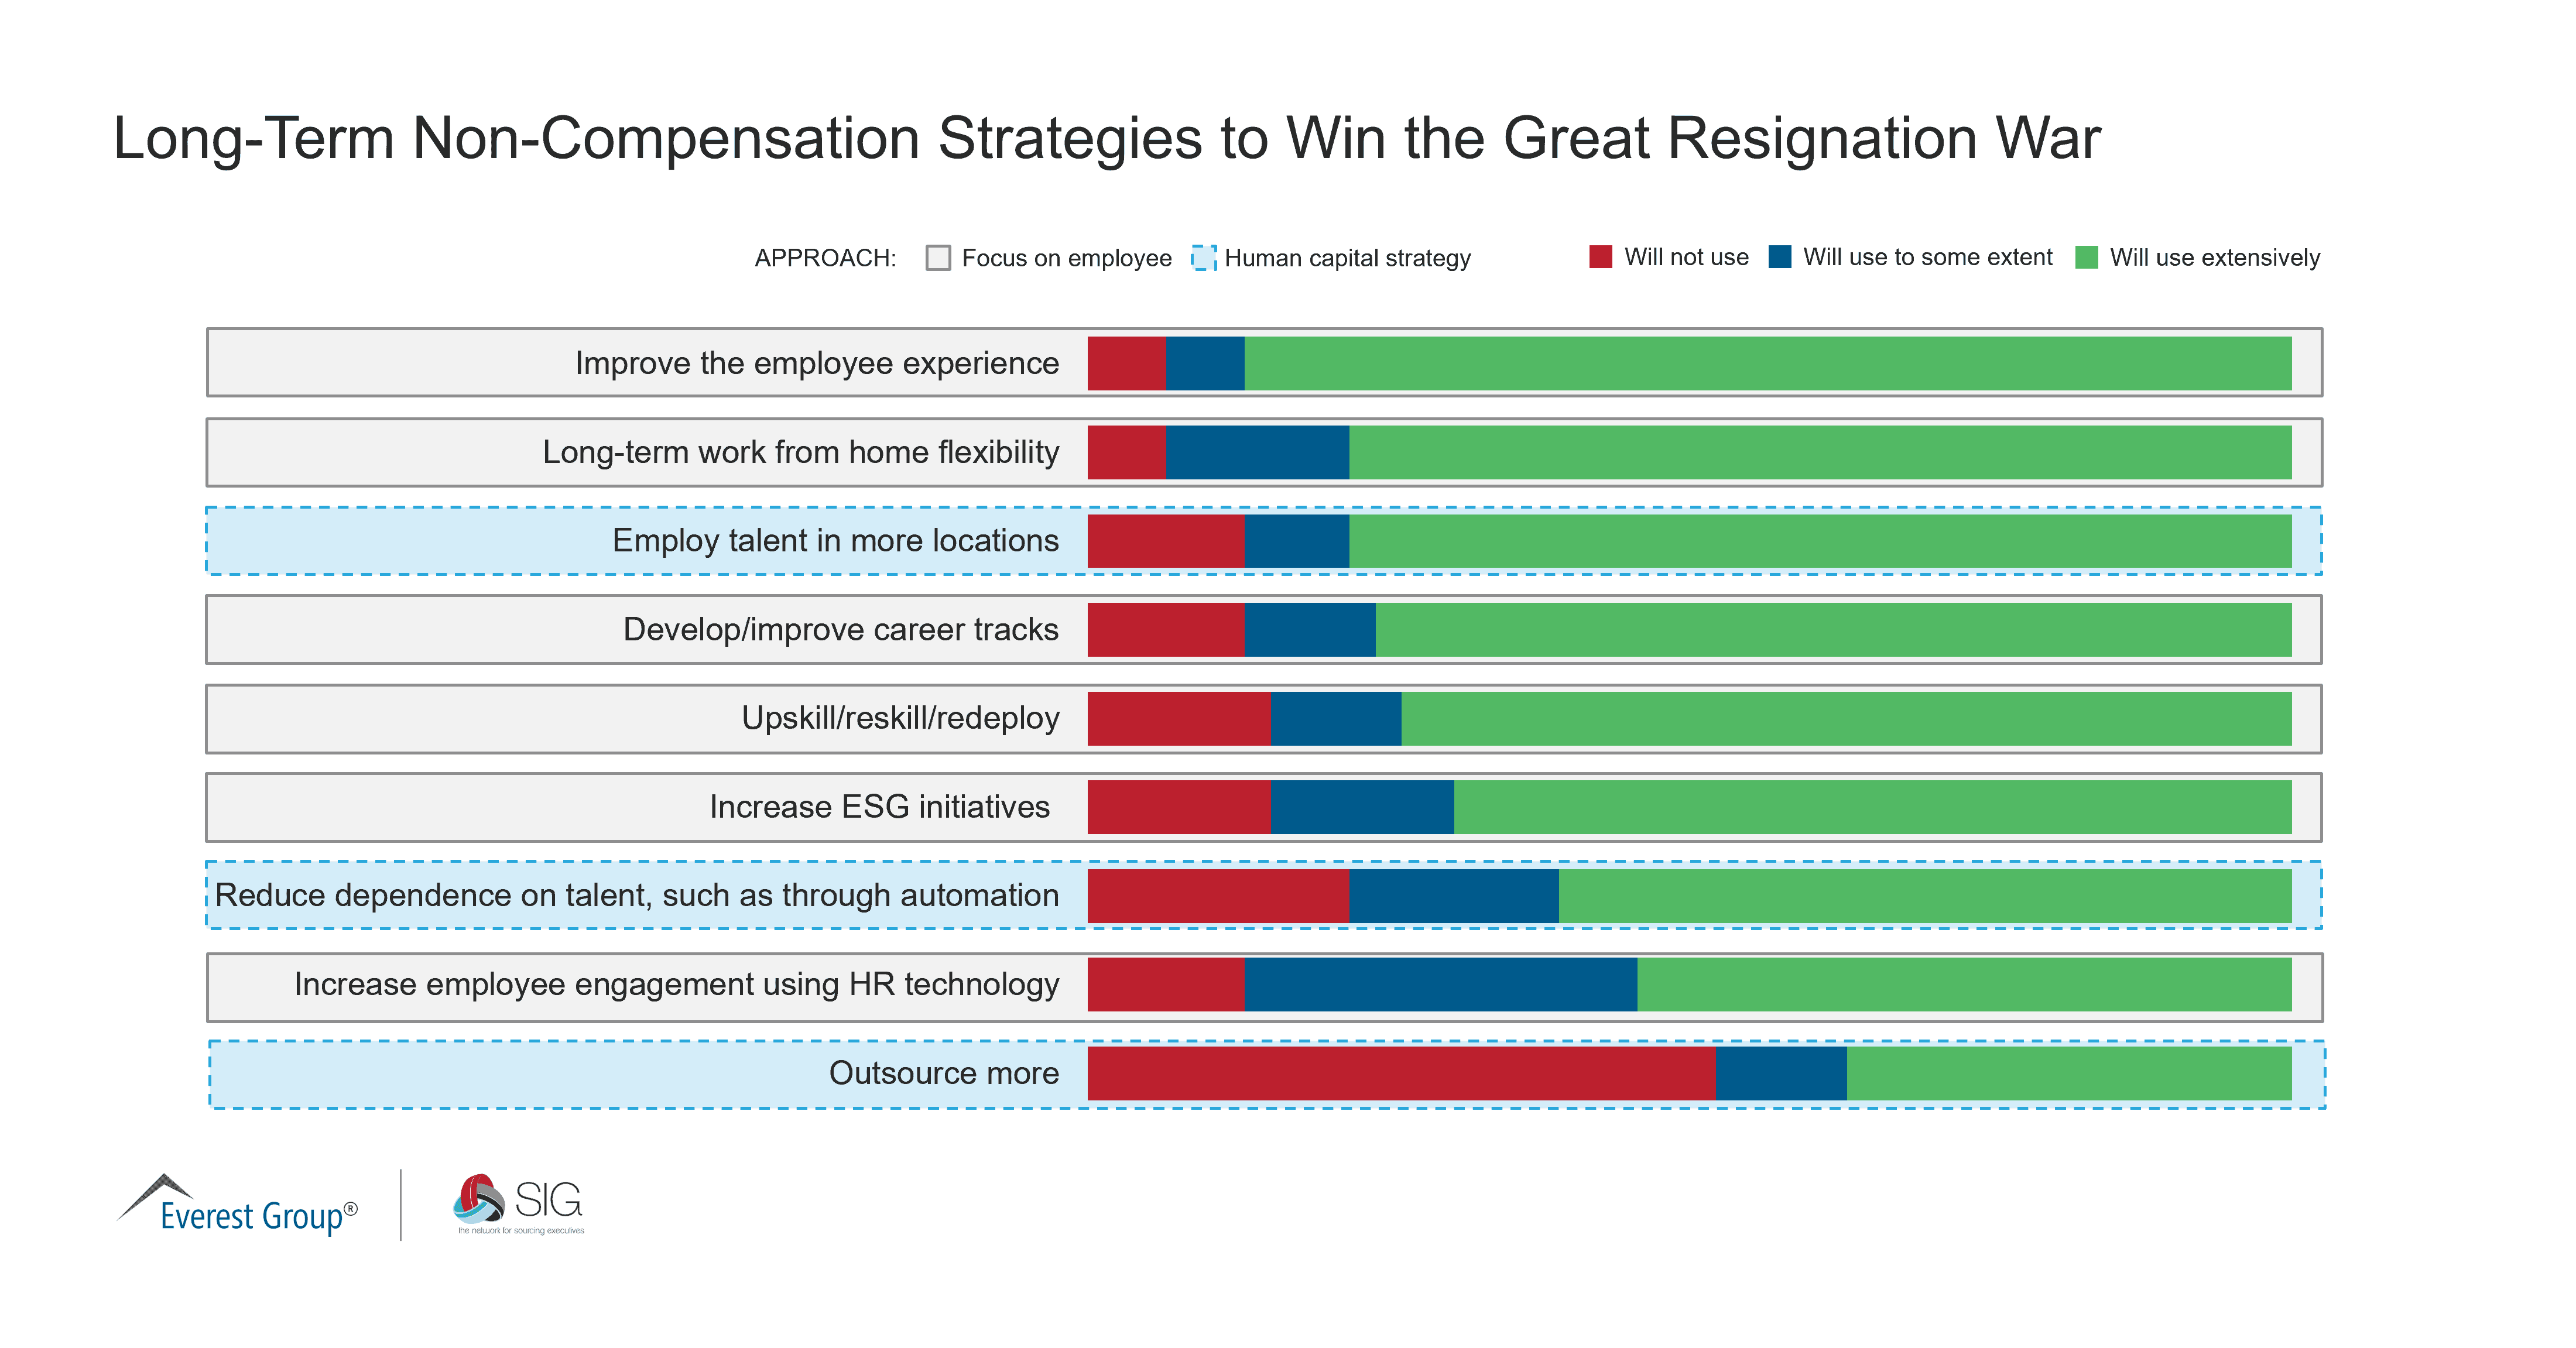 August 2021 Quick Poll_Long-Term Non-Compensation Strategies to Win the Great Resignation War